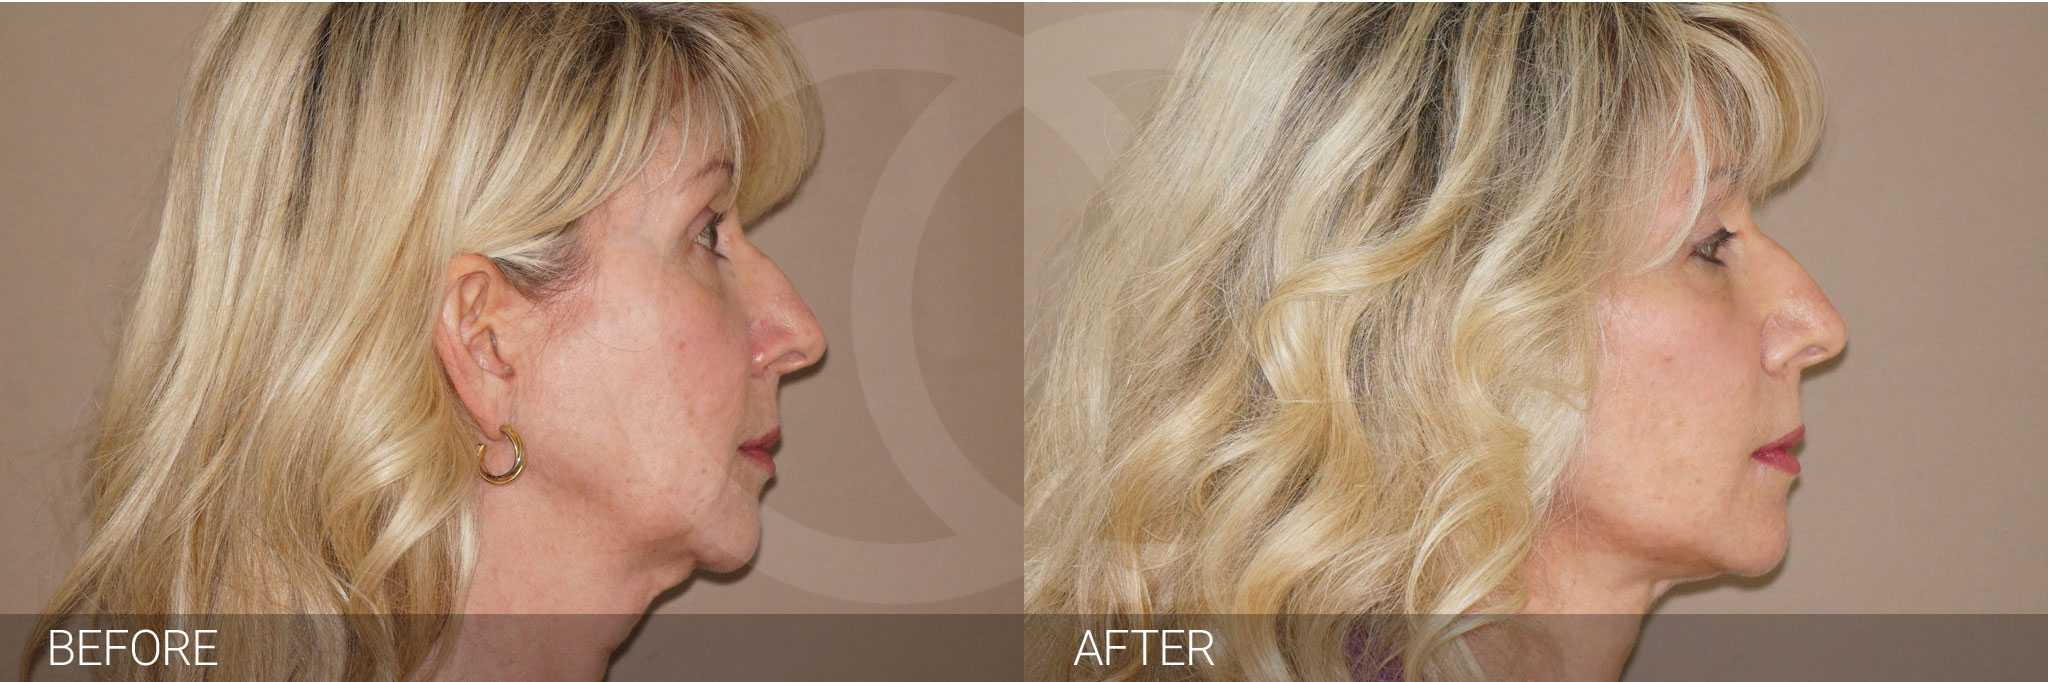 Eyelid surgery blepharoplasty photo before and after